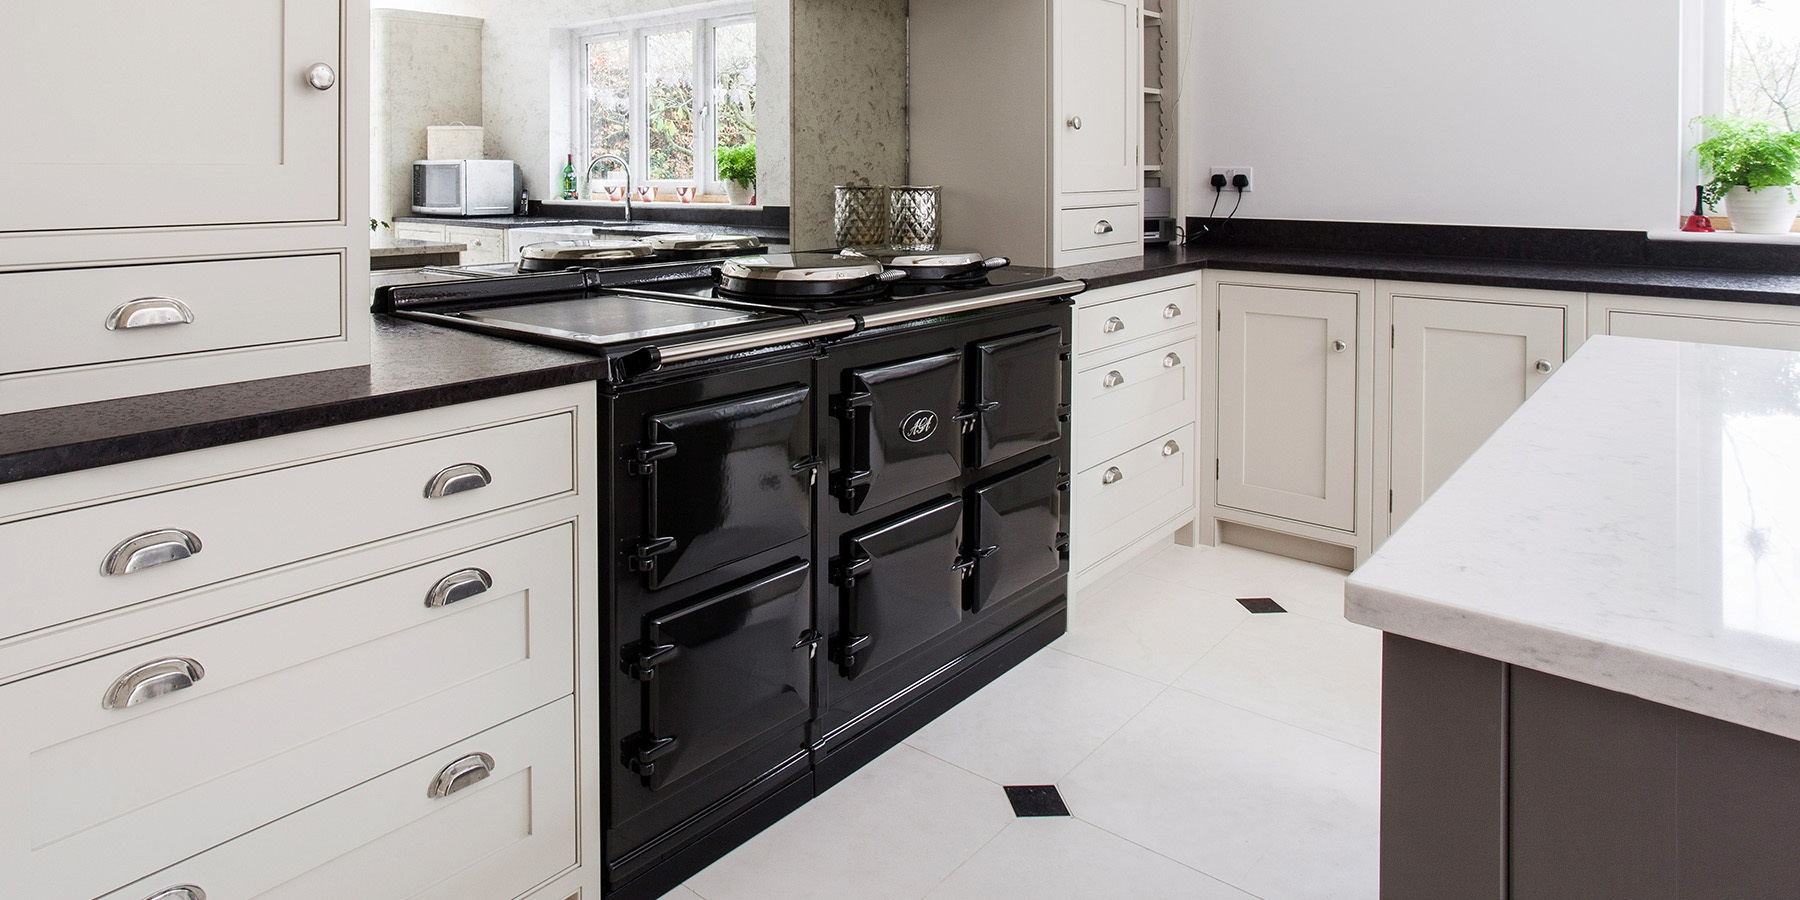 Bespoke Shaker Kitchen With AGA - Beautiful handmade Wellsdown cabinetry in white, with black worktops and black AGA Total Control.